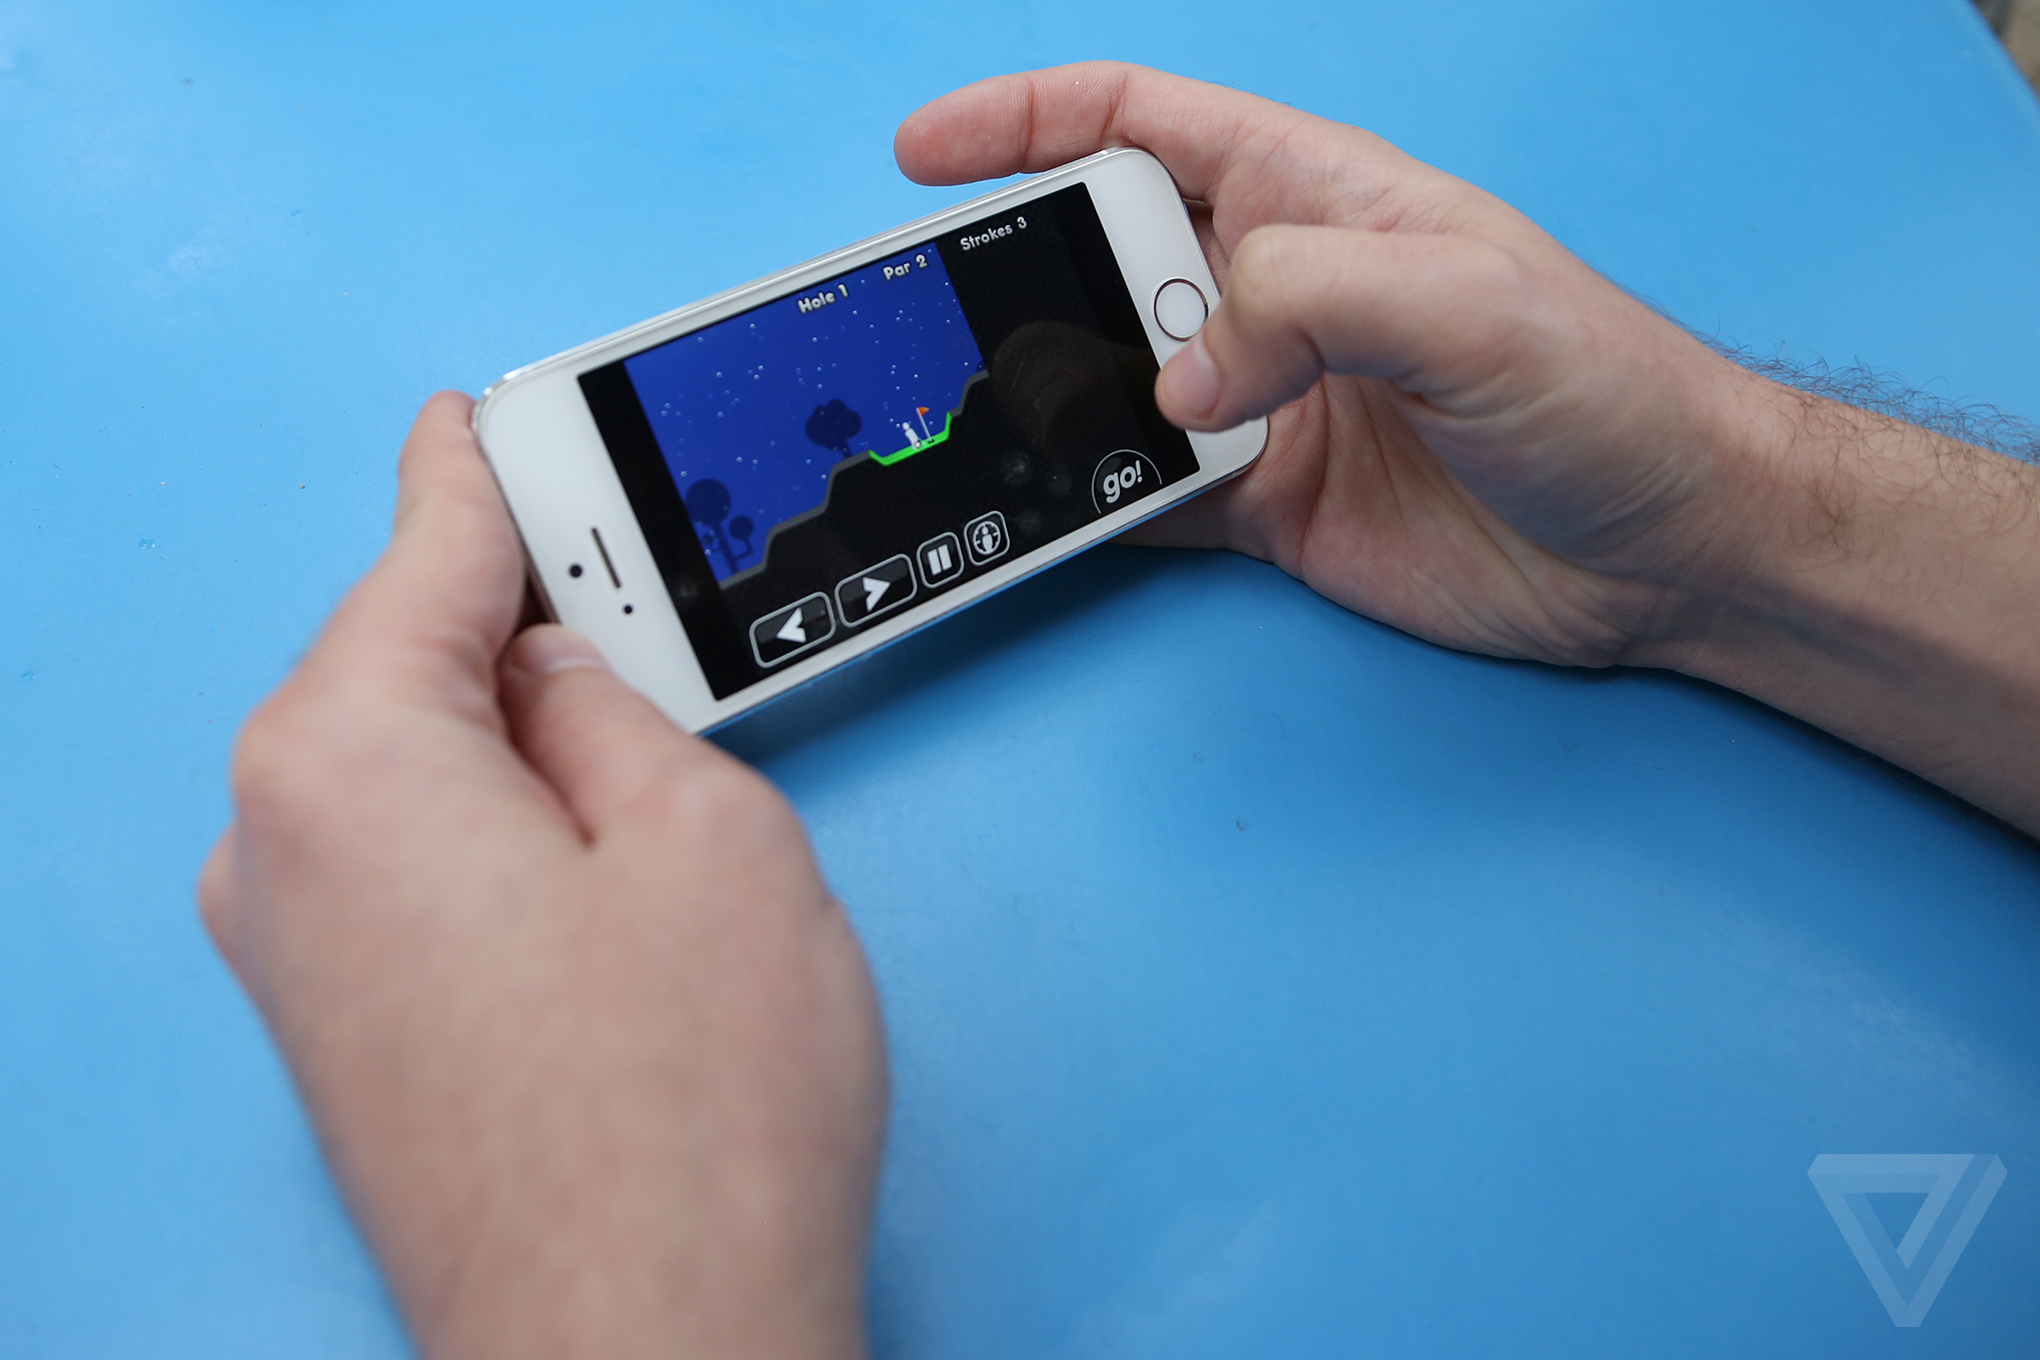 The 21 games that should be installed on every iPhone | The Verge